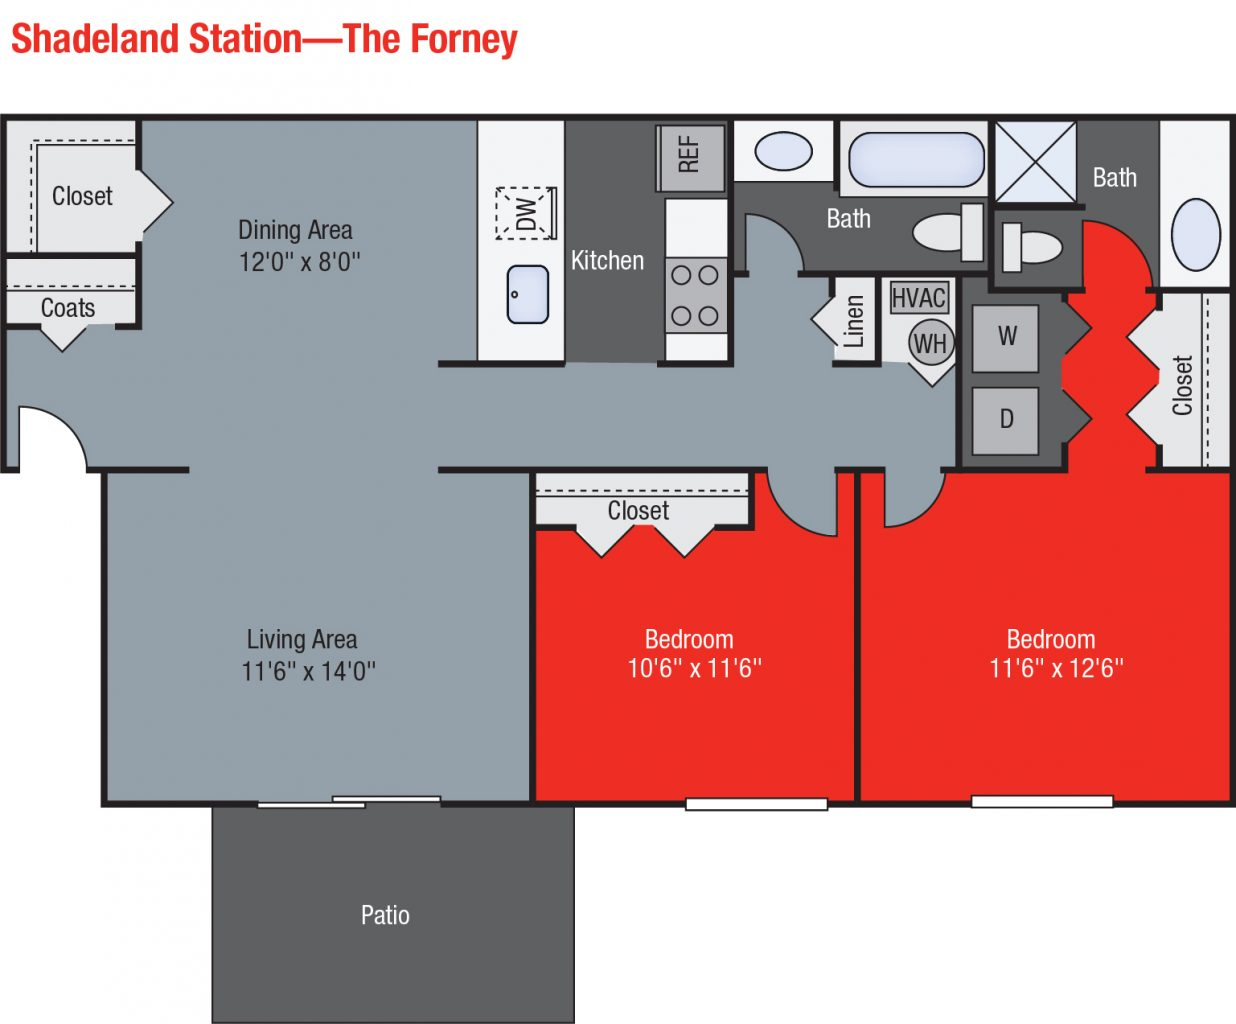 Apartments For Rent TGM Shadeland Station - Forney